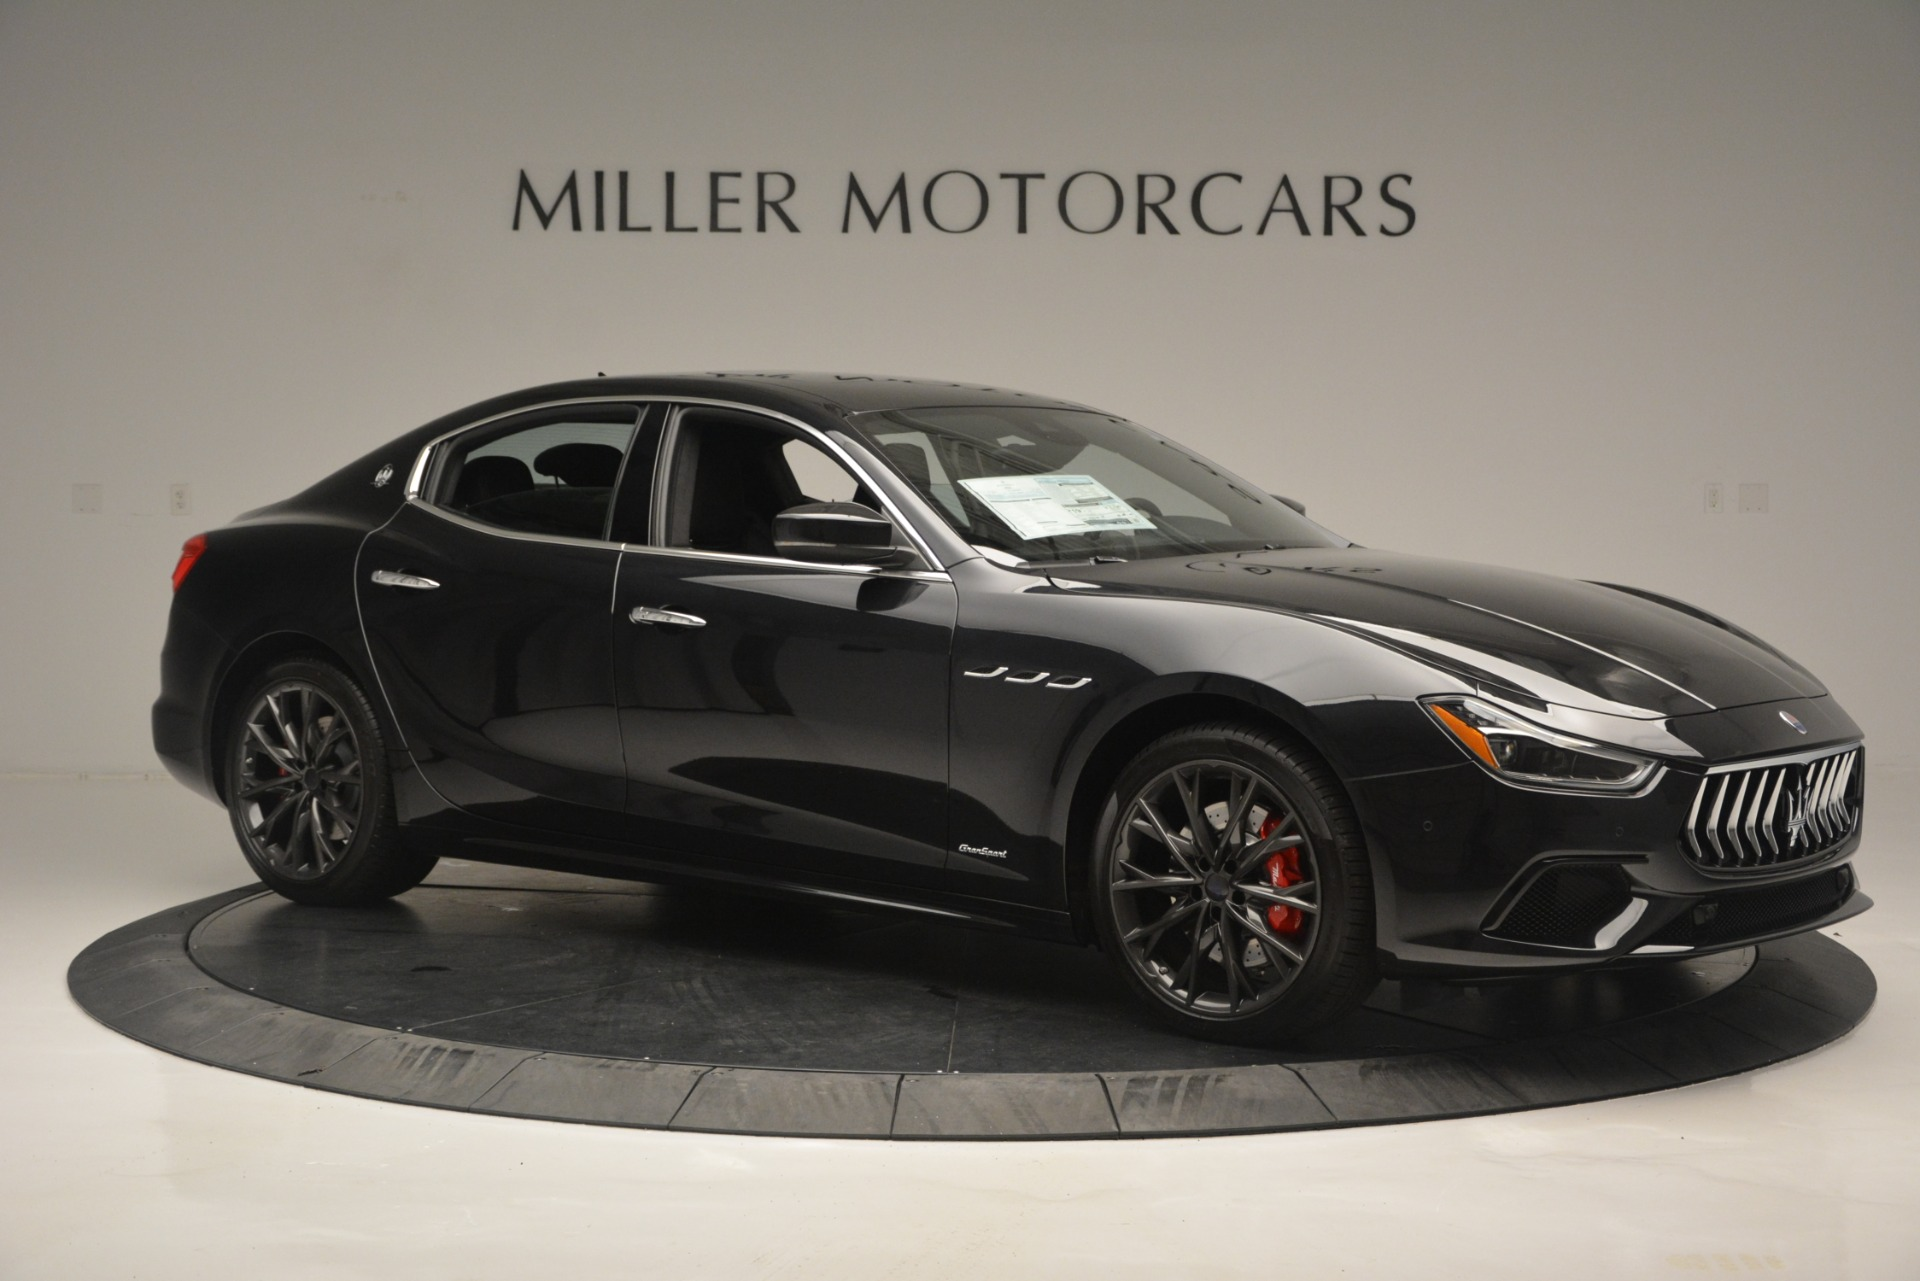 New 2019 Maserati Ghibli S Q4 GranSport For Sale In Westport, CT 2588_p10